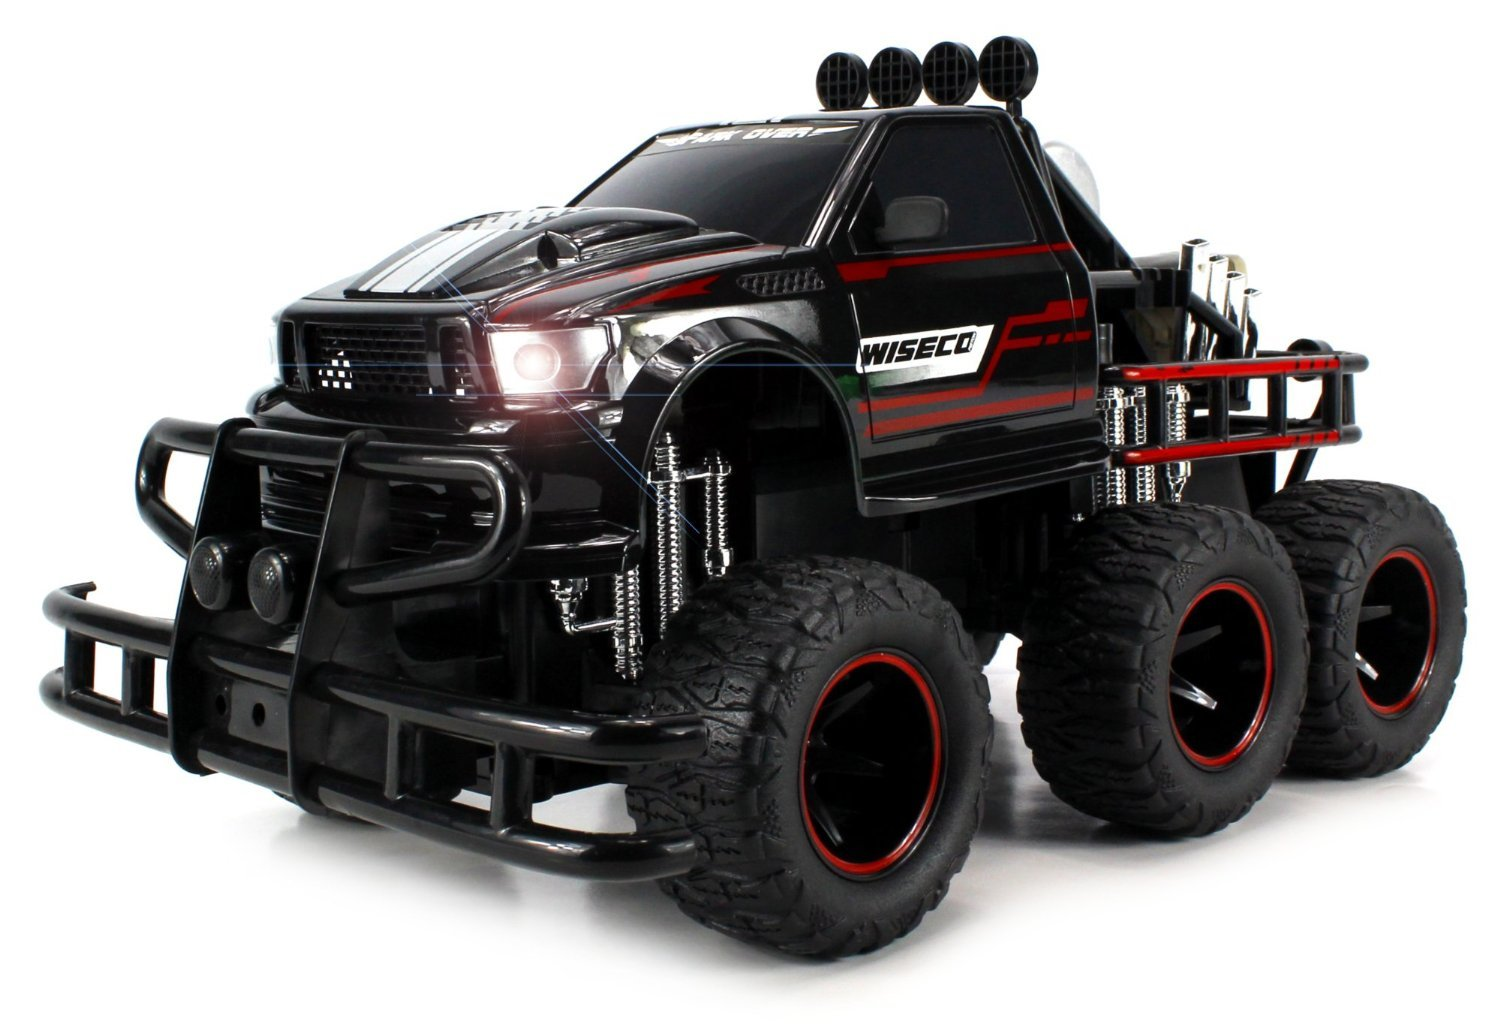 rc 4x4 cars for sale with Best Rc Trucks on Bigfoot Mini Monster Truck Go Kart in addition Behold Every Photo Traxxas Trx 4 besides Pinzgauer High Mobility All Terrain Vehicle as well 2017 Ford Raptor Color Options as well Gonna Love Wicked 1938 Ford Coe Rat Rod.